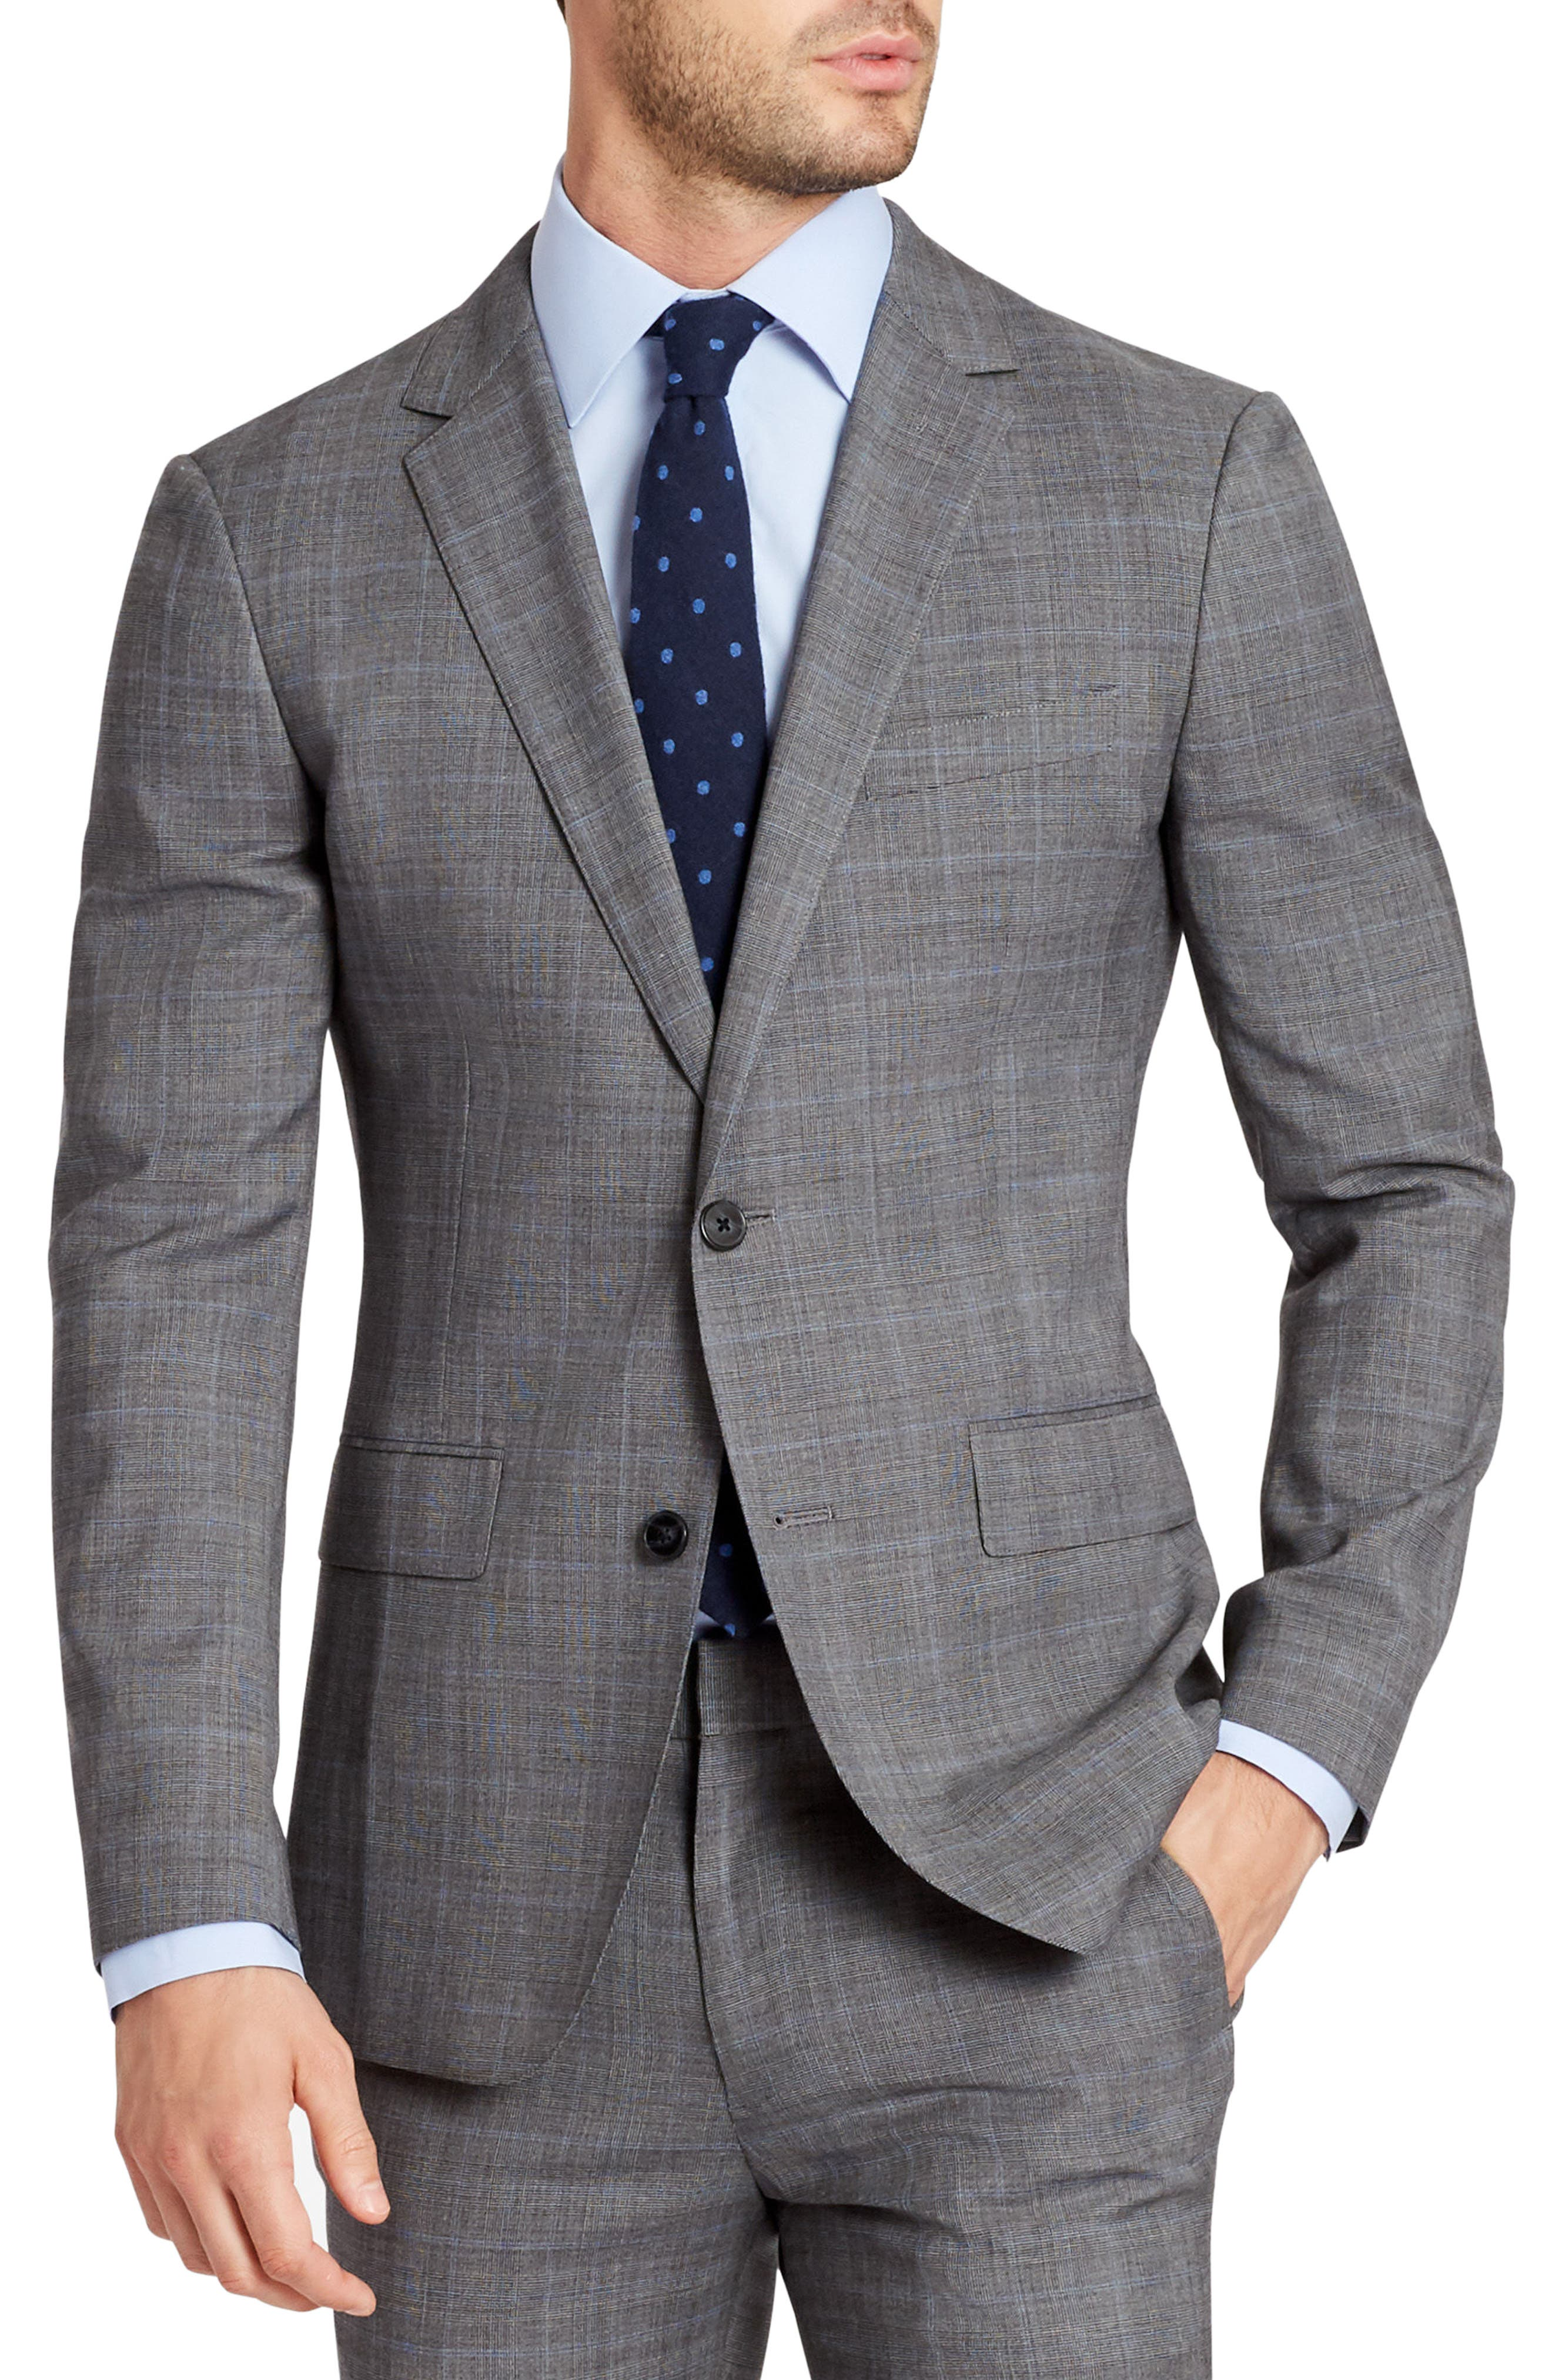 Alternate Image 1 Selected - Bonobos Jetsetter Slim Fit Plaid Stretch Wool Sport Coat